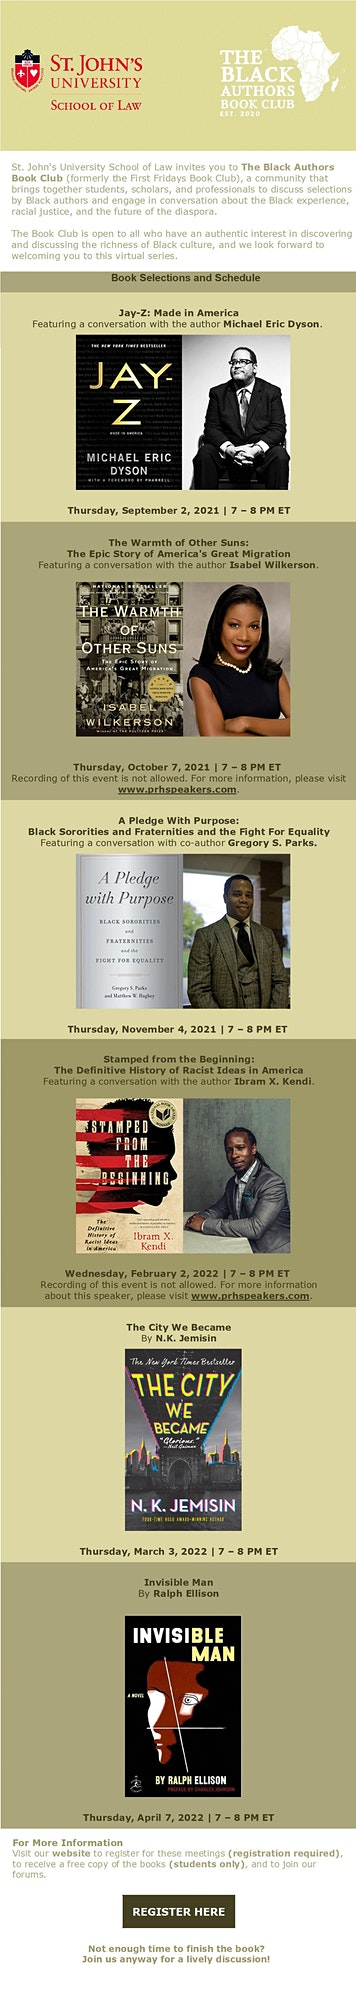 The Black Authors Book Club, St. John's School of Law image